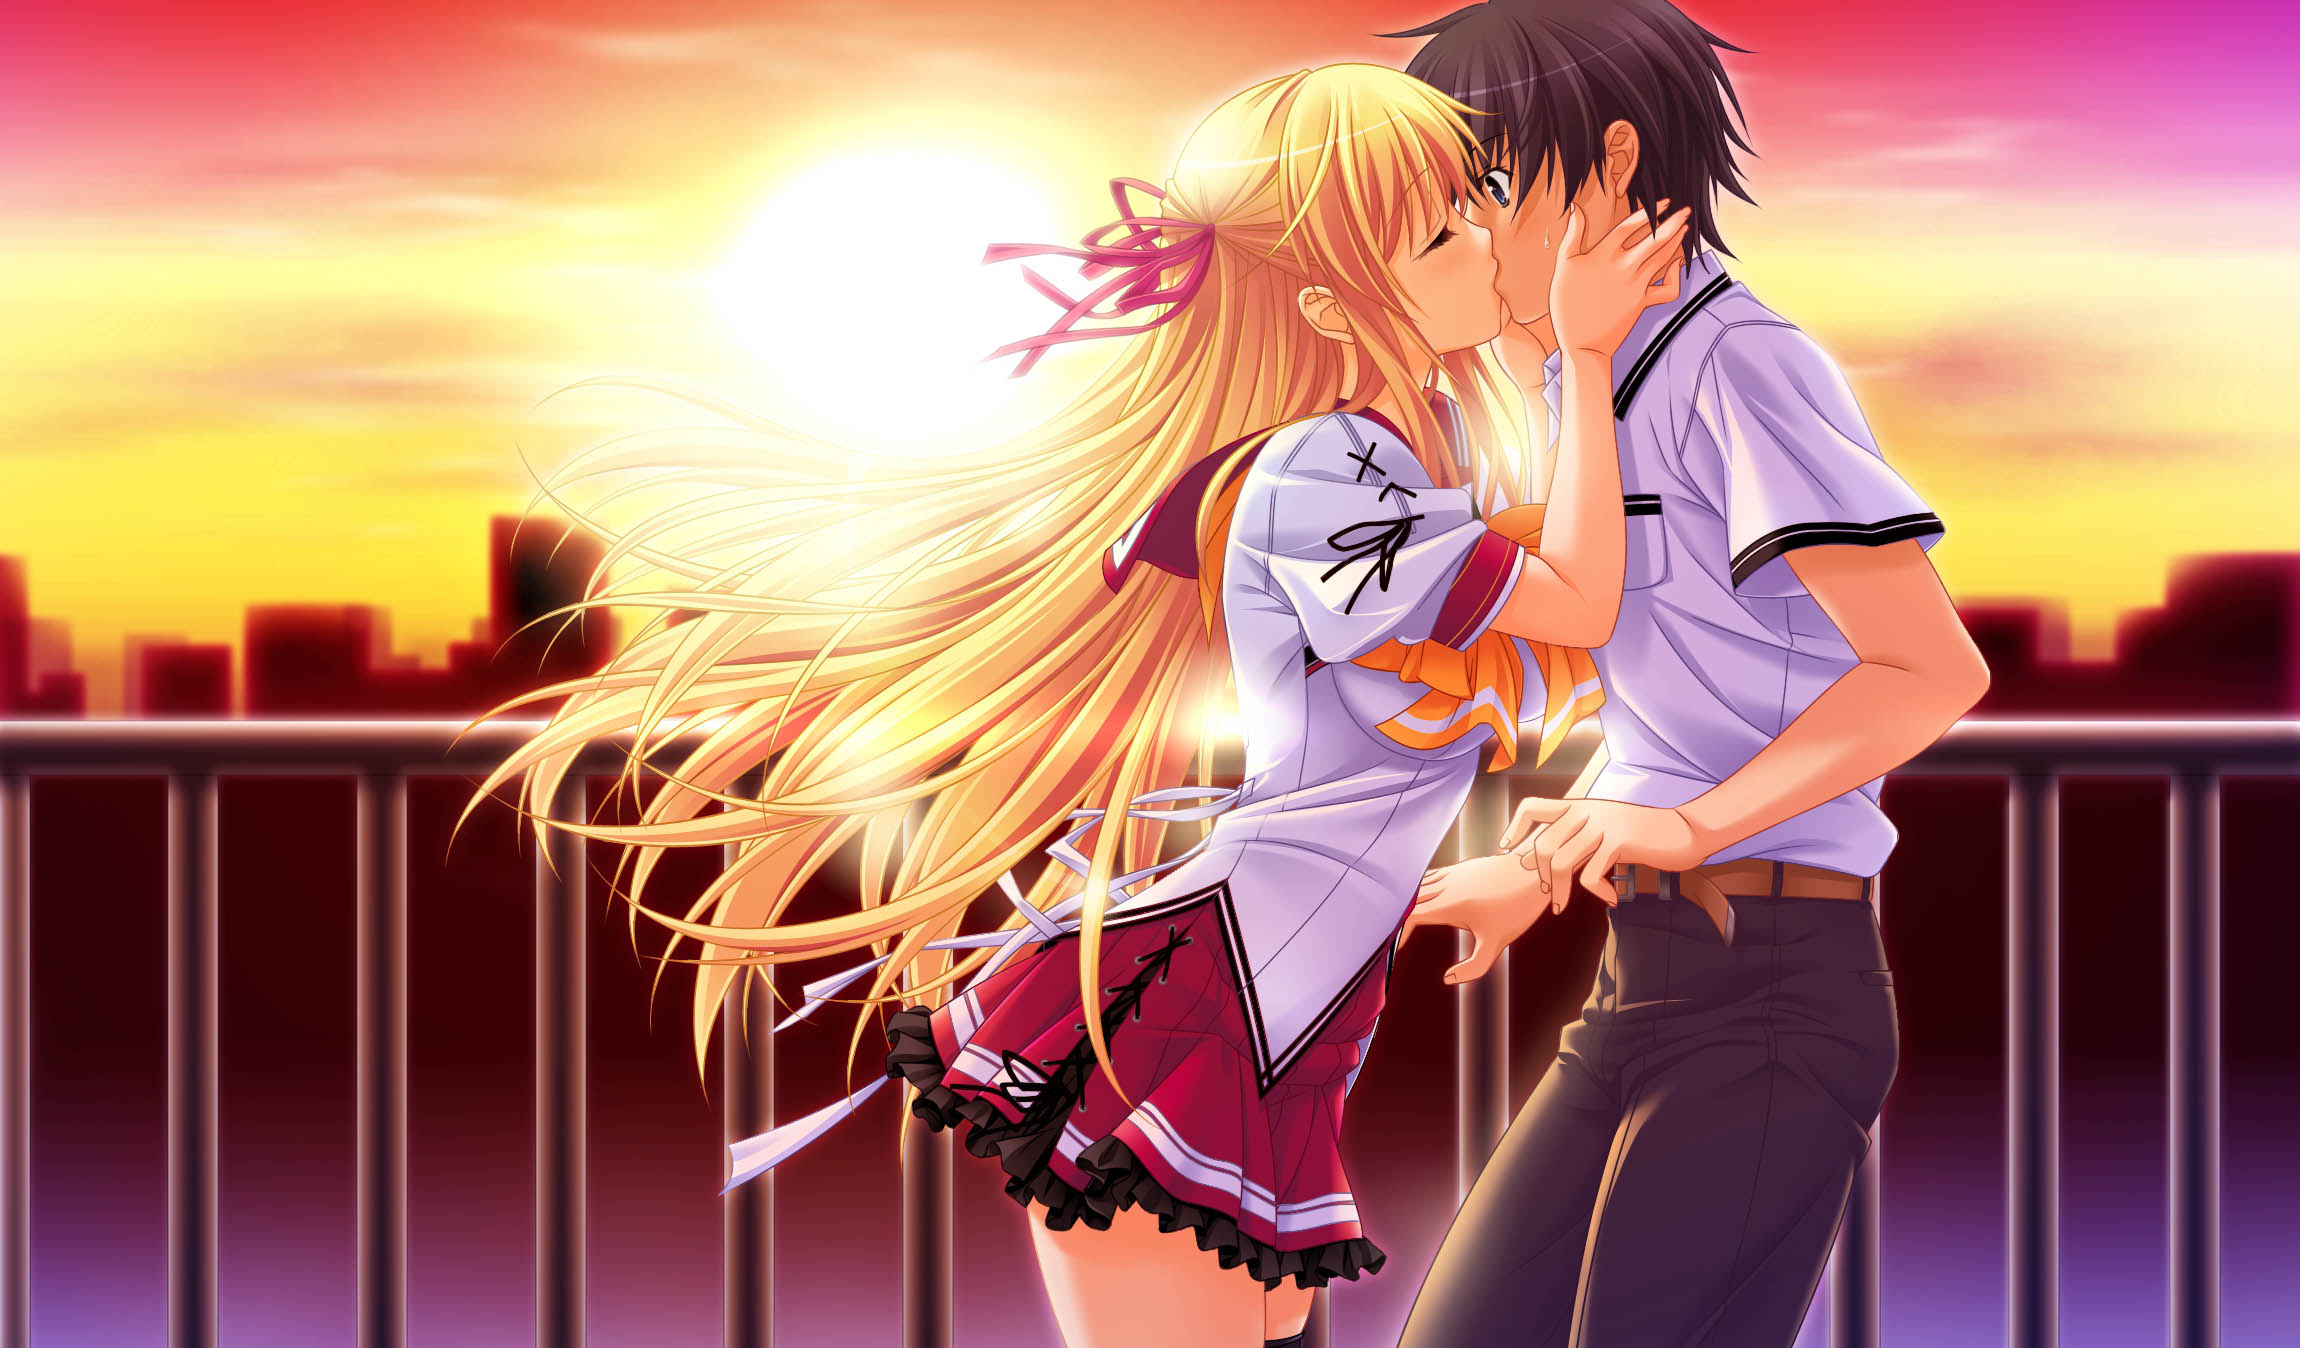 Love Kiss Wallpapers For Desktop : Anime Kiss Wallpapers - WallpaperSafari